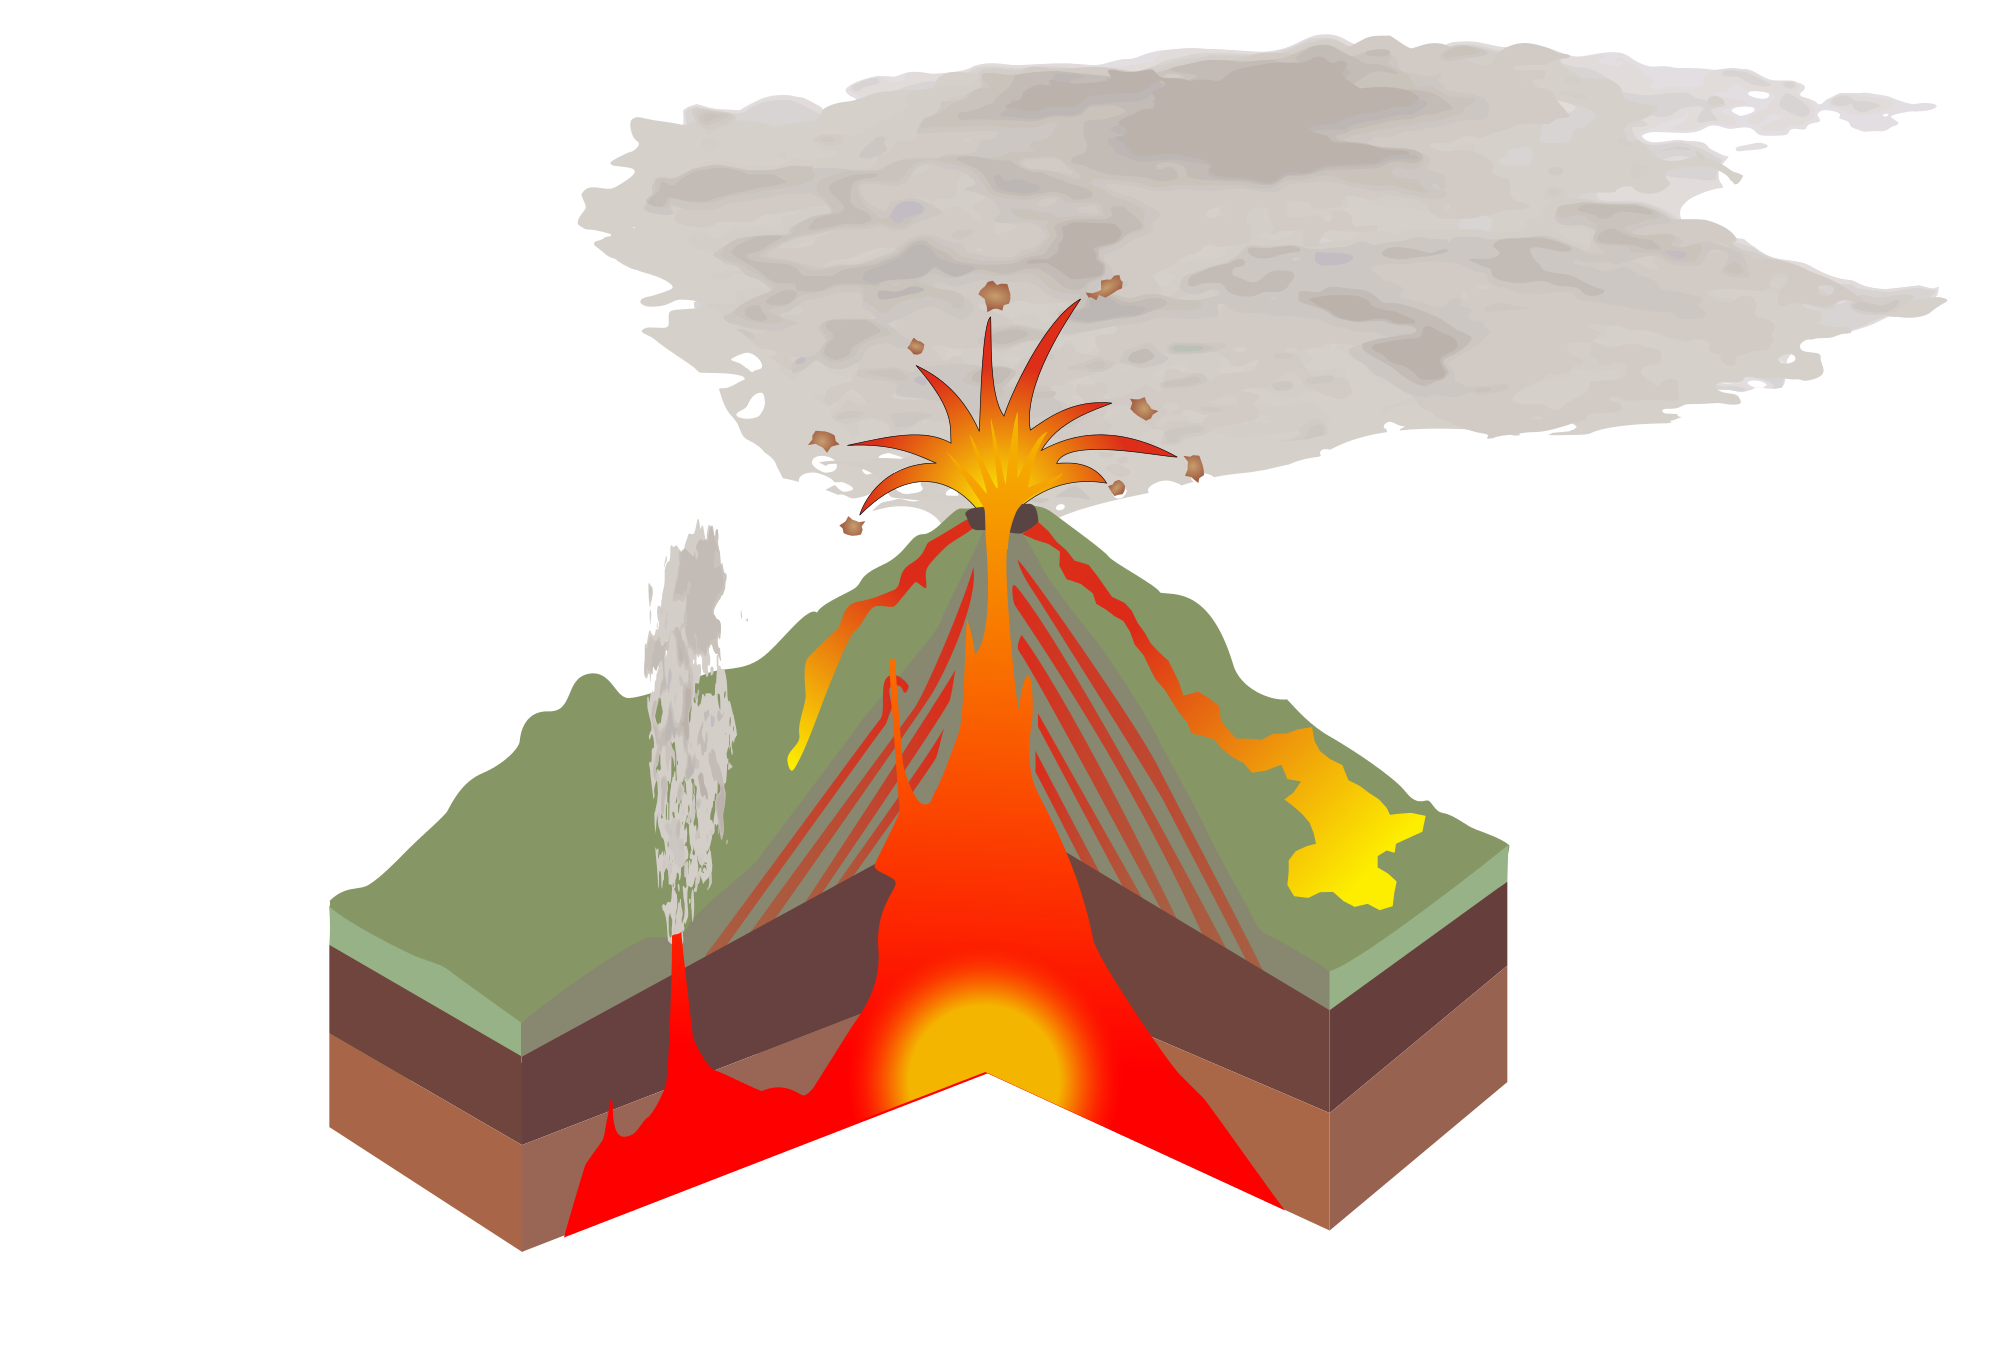 Volcano svg #17, Download drawings